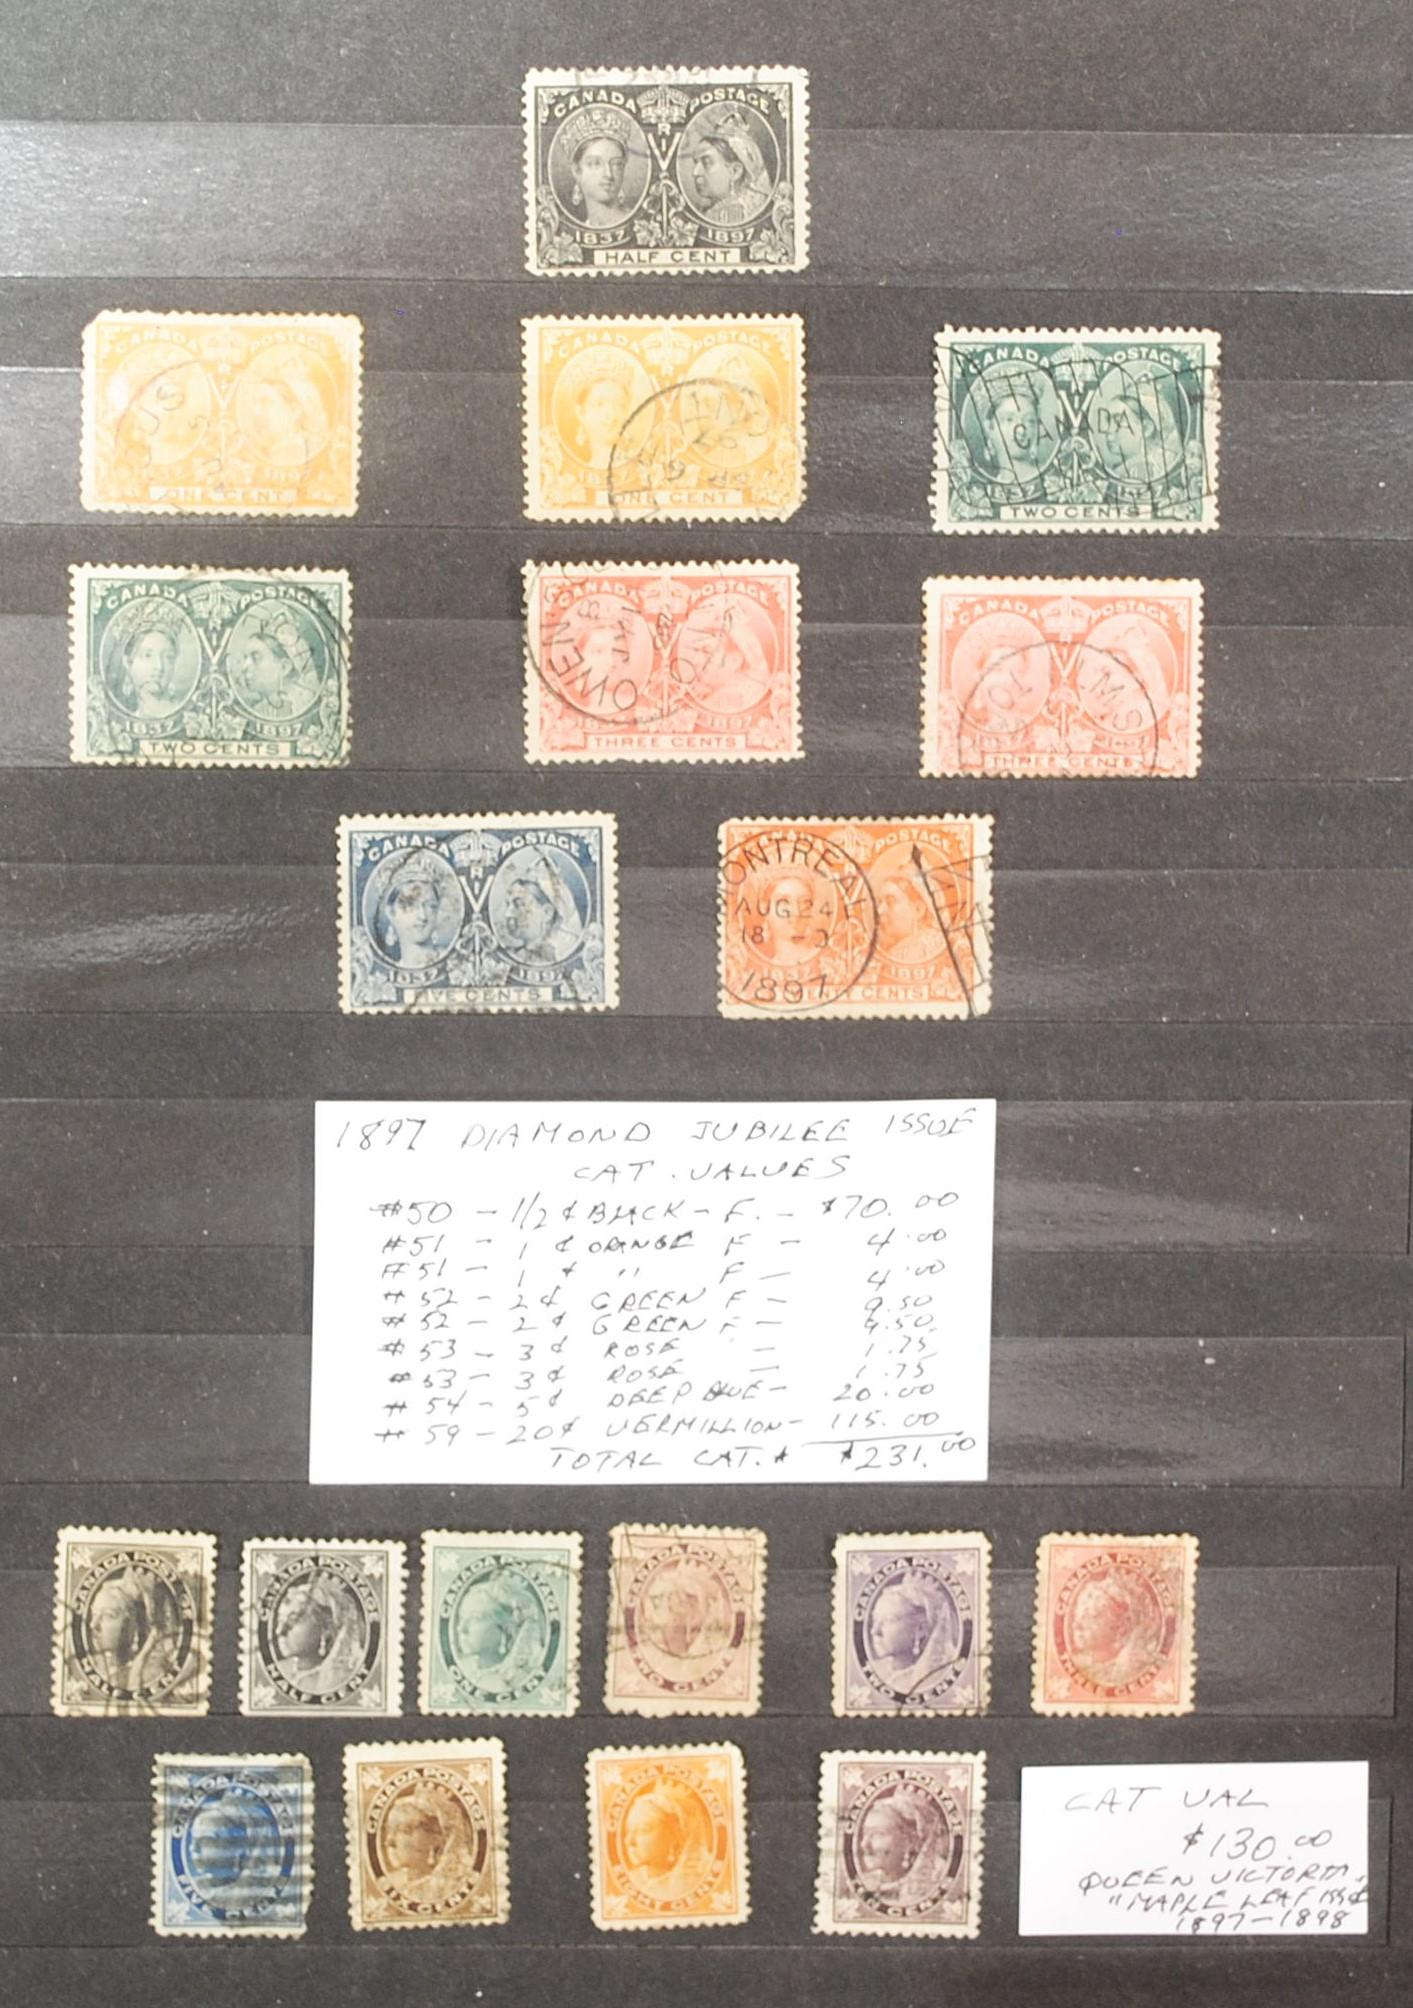 Canada Queen Victoria collection (41 stamps) 1897-1902